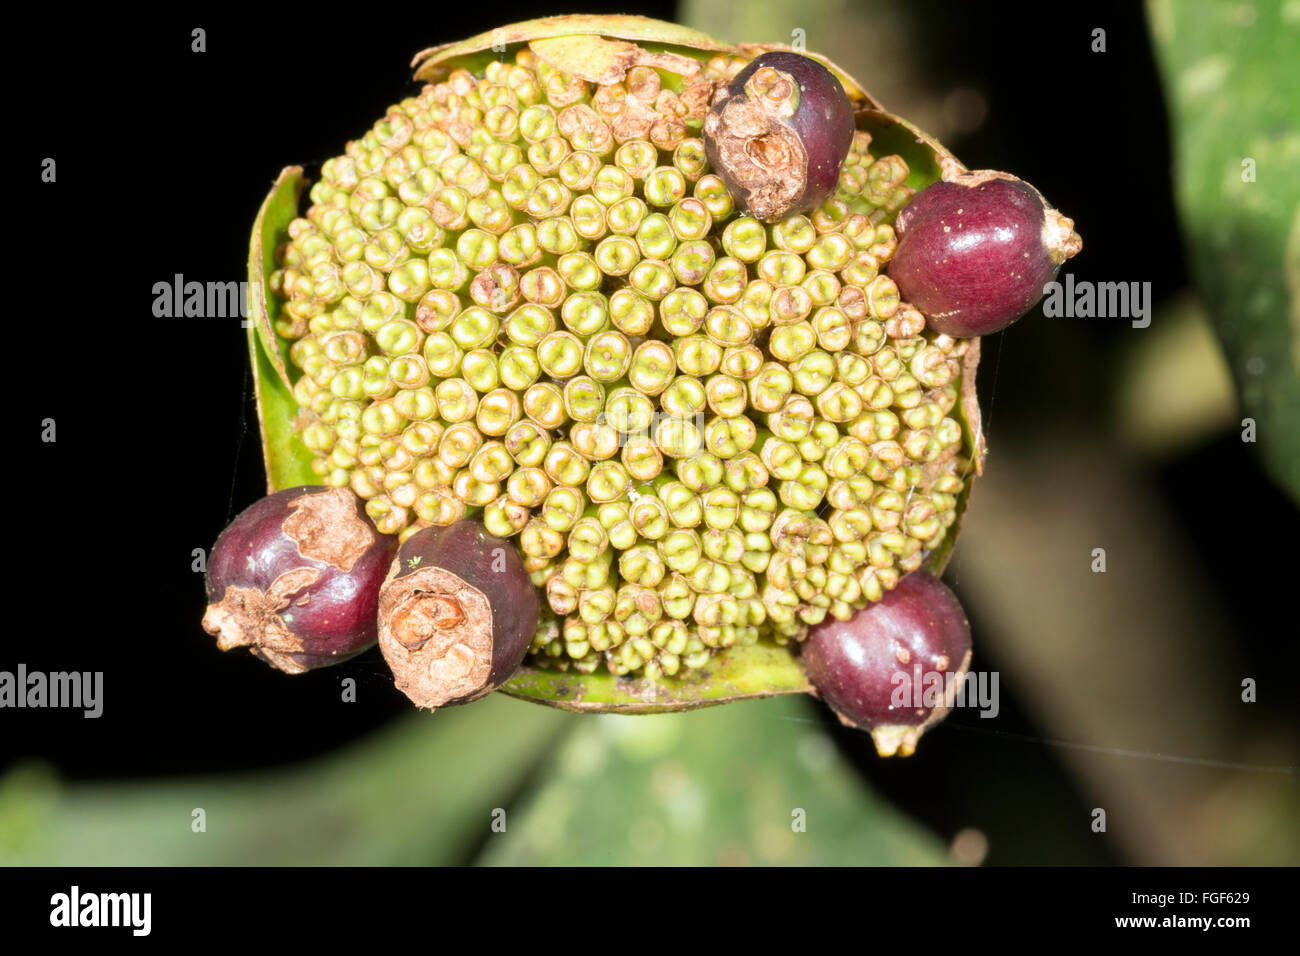 An unusual looking inflorescence of an understory shrub in the rainforest, Pastaza province, Ecuador. - Stock Image